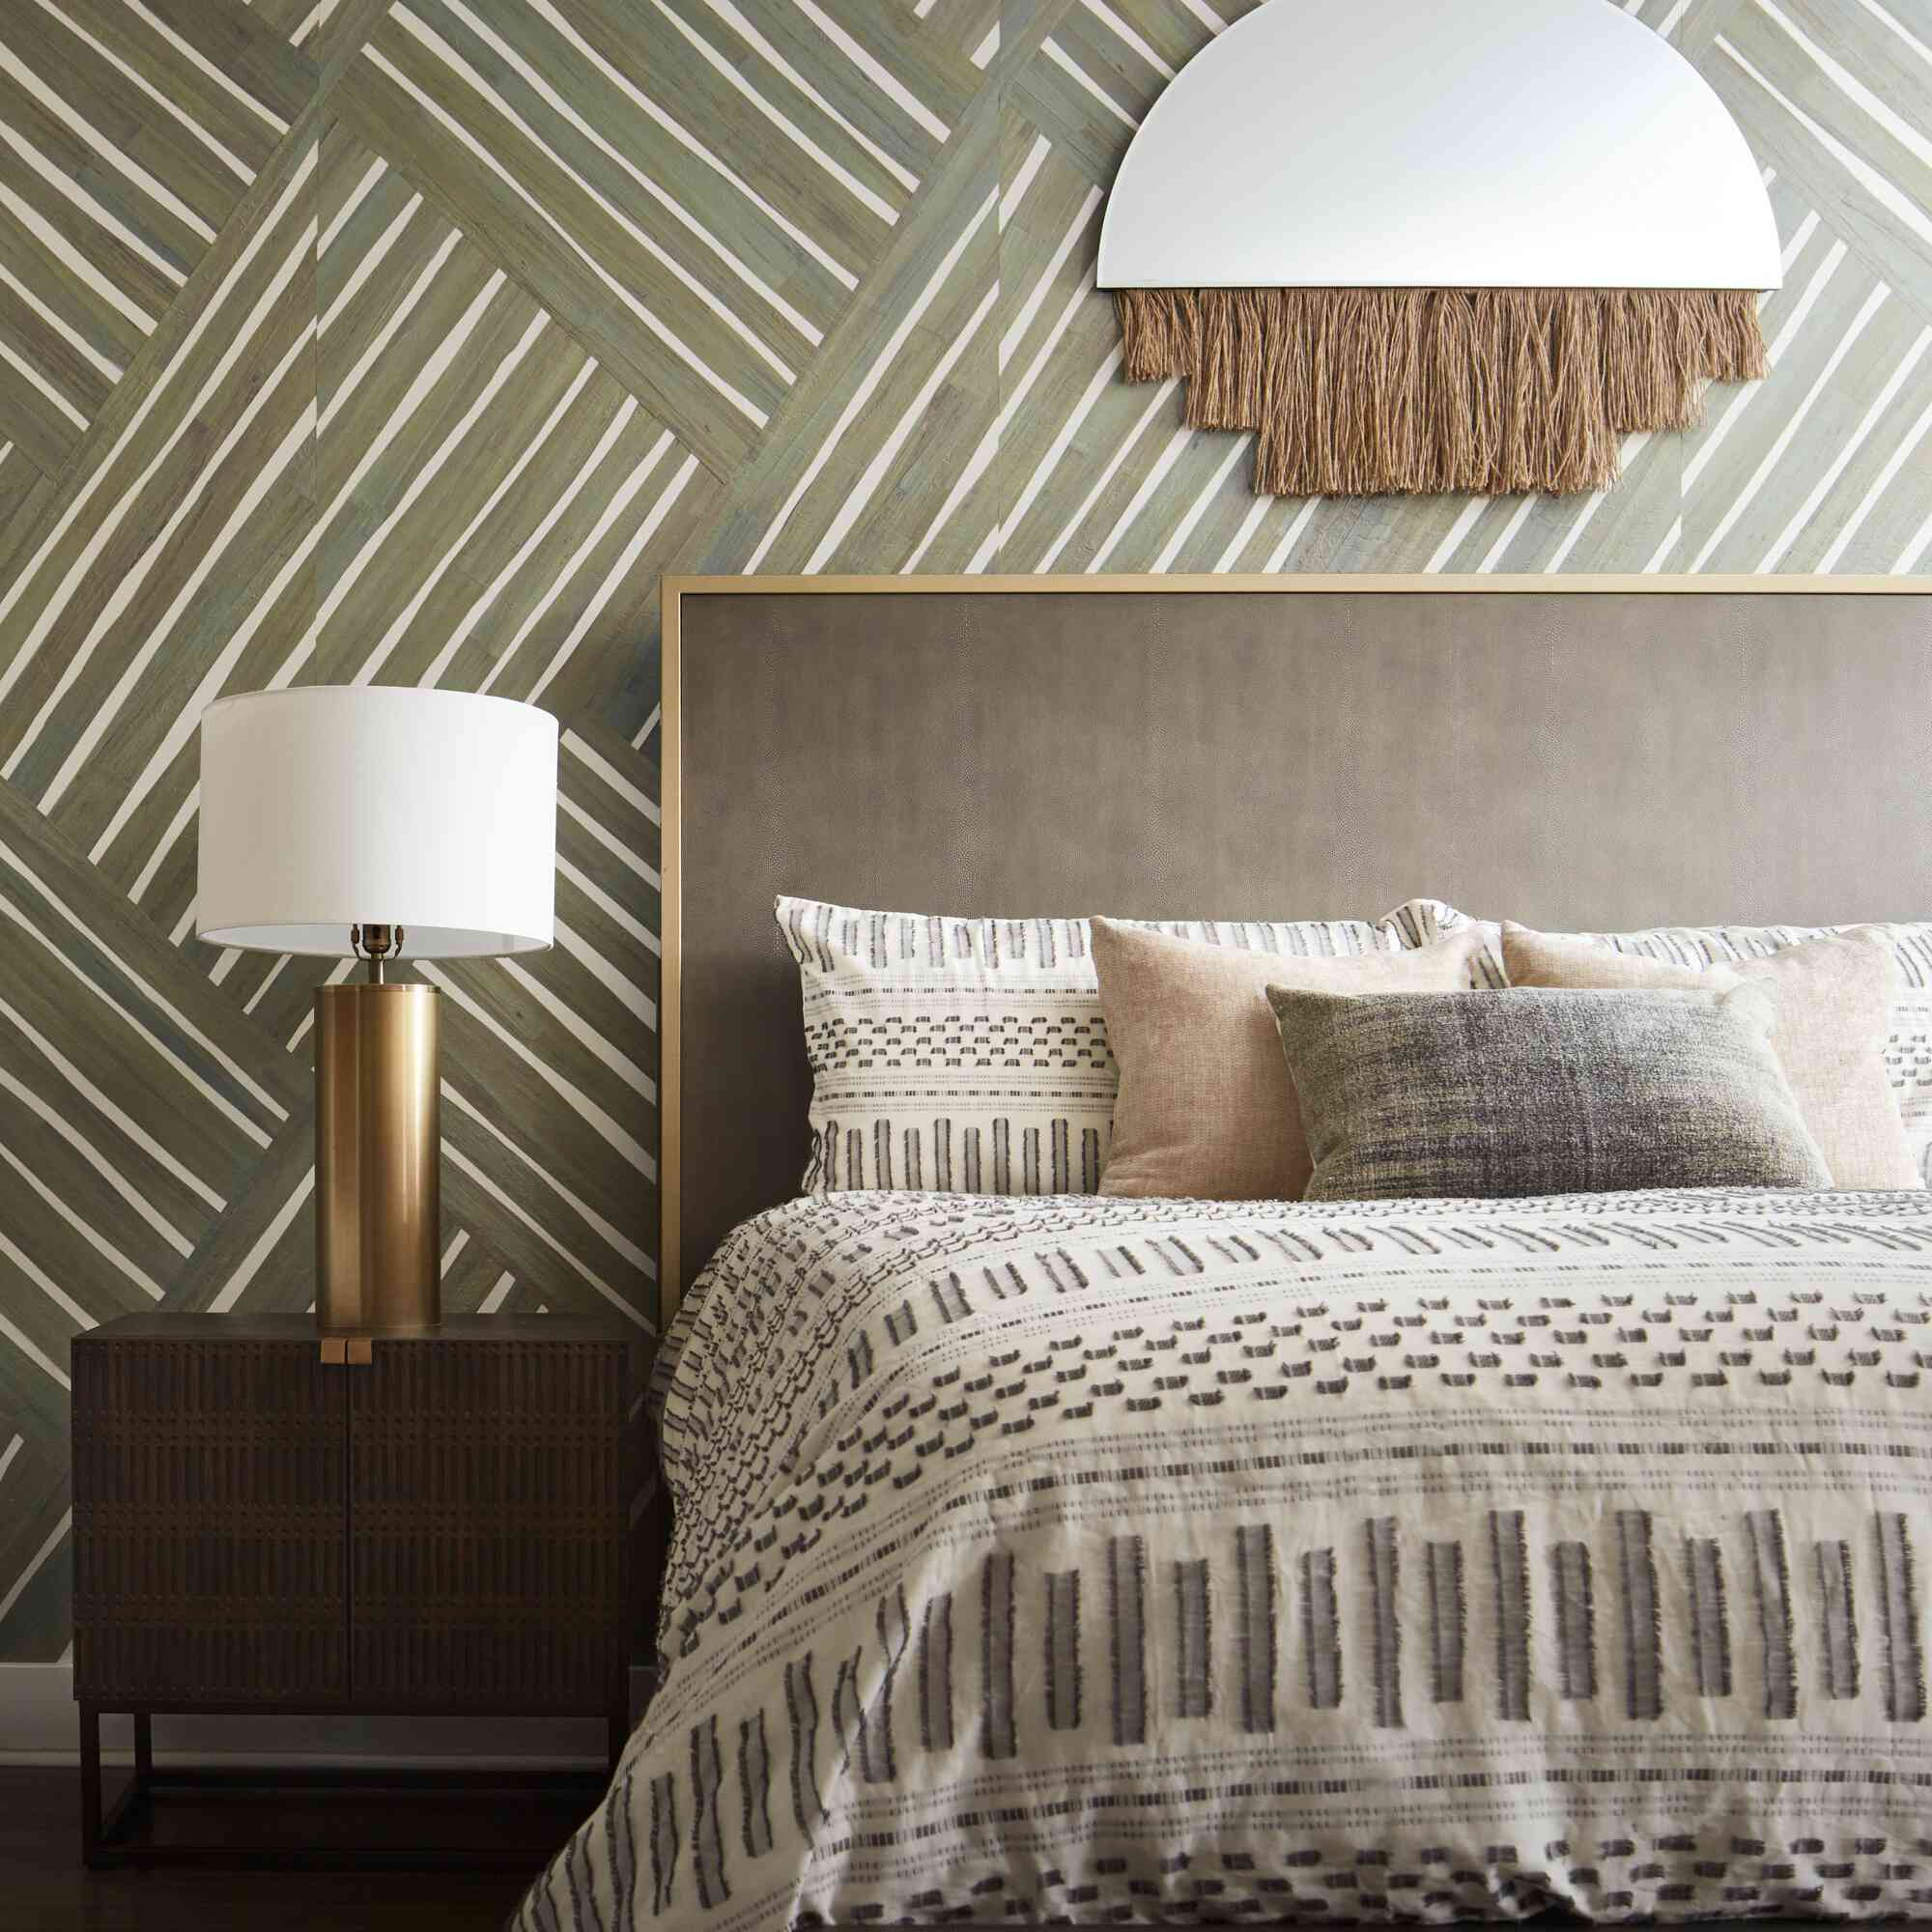 abstract wallpaper in a bedroom